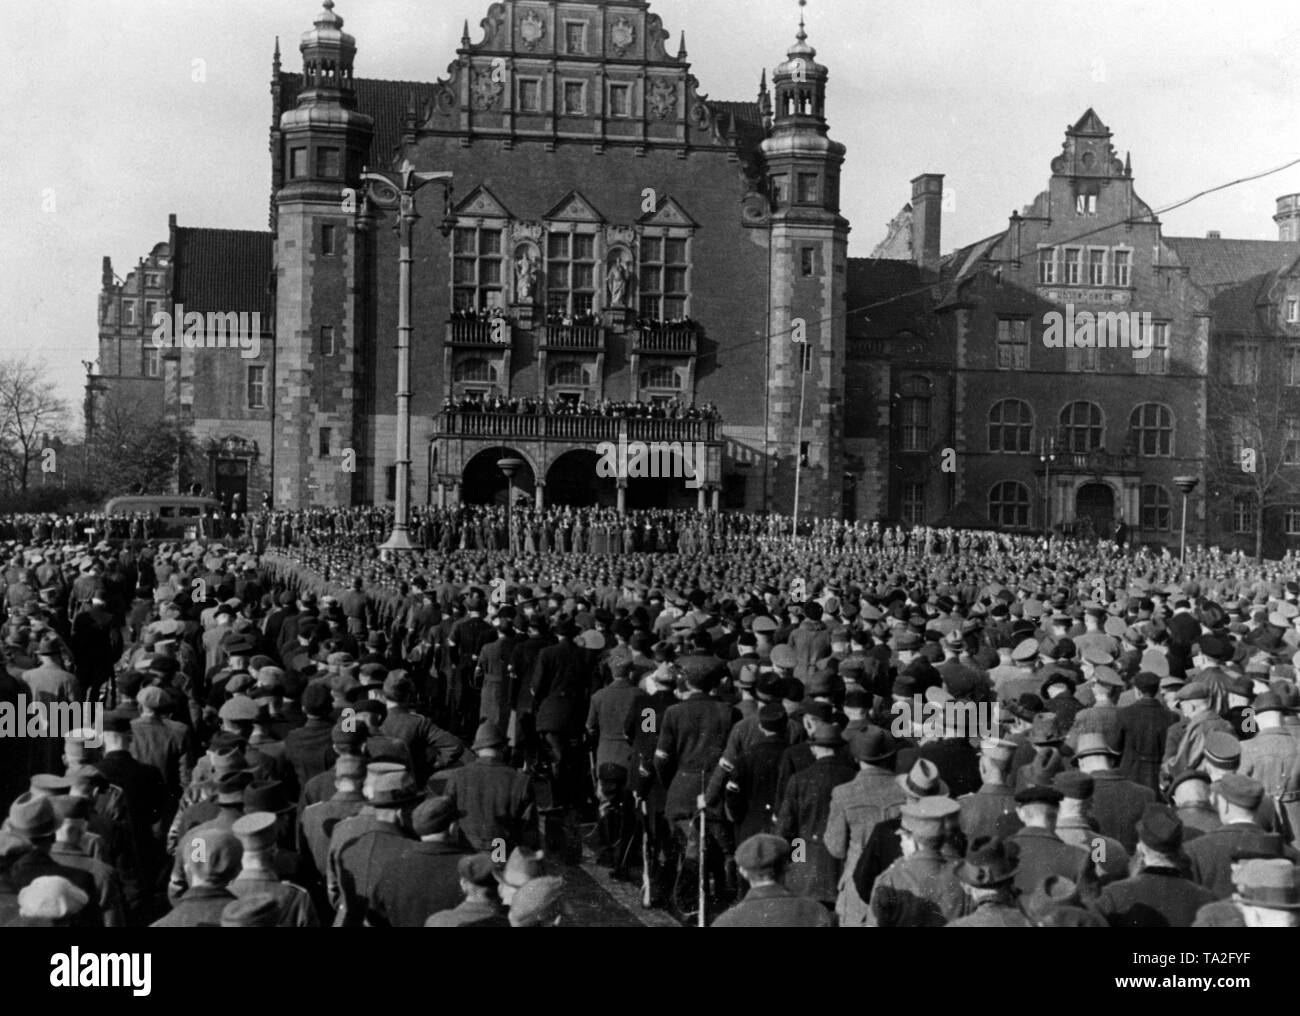 """Men of the """"Wartheland Volkssturm"""" listen to the speech of Generaloberst Guderian on the """"Day of Freedom"""" on the occasion of the 5th anniversary of the Gau Watheland. Stock Photo"""